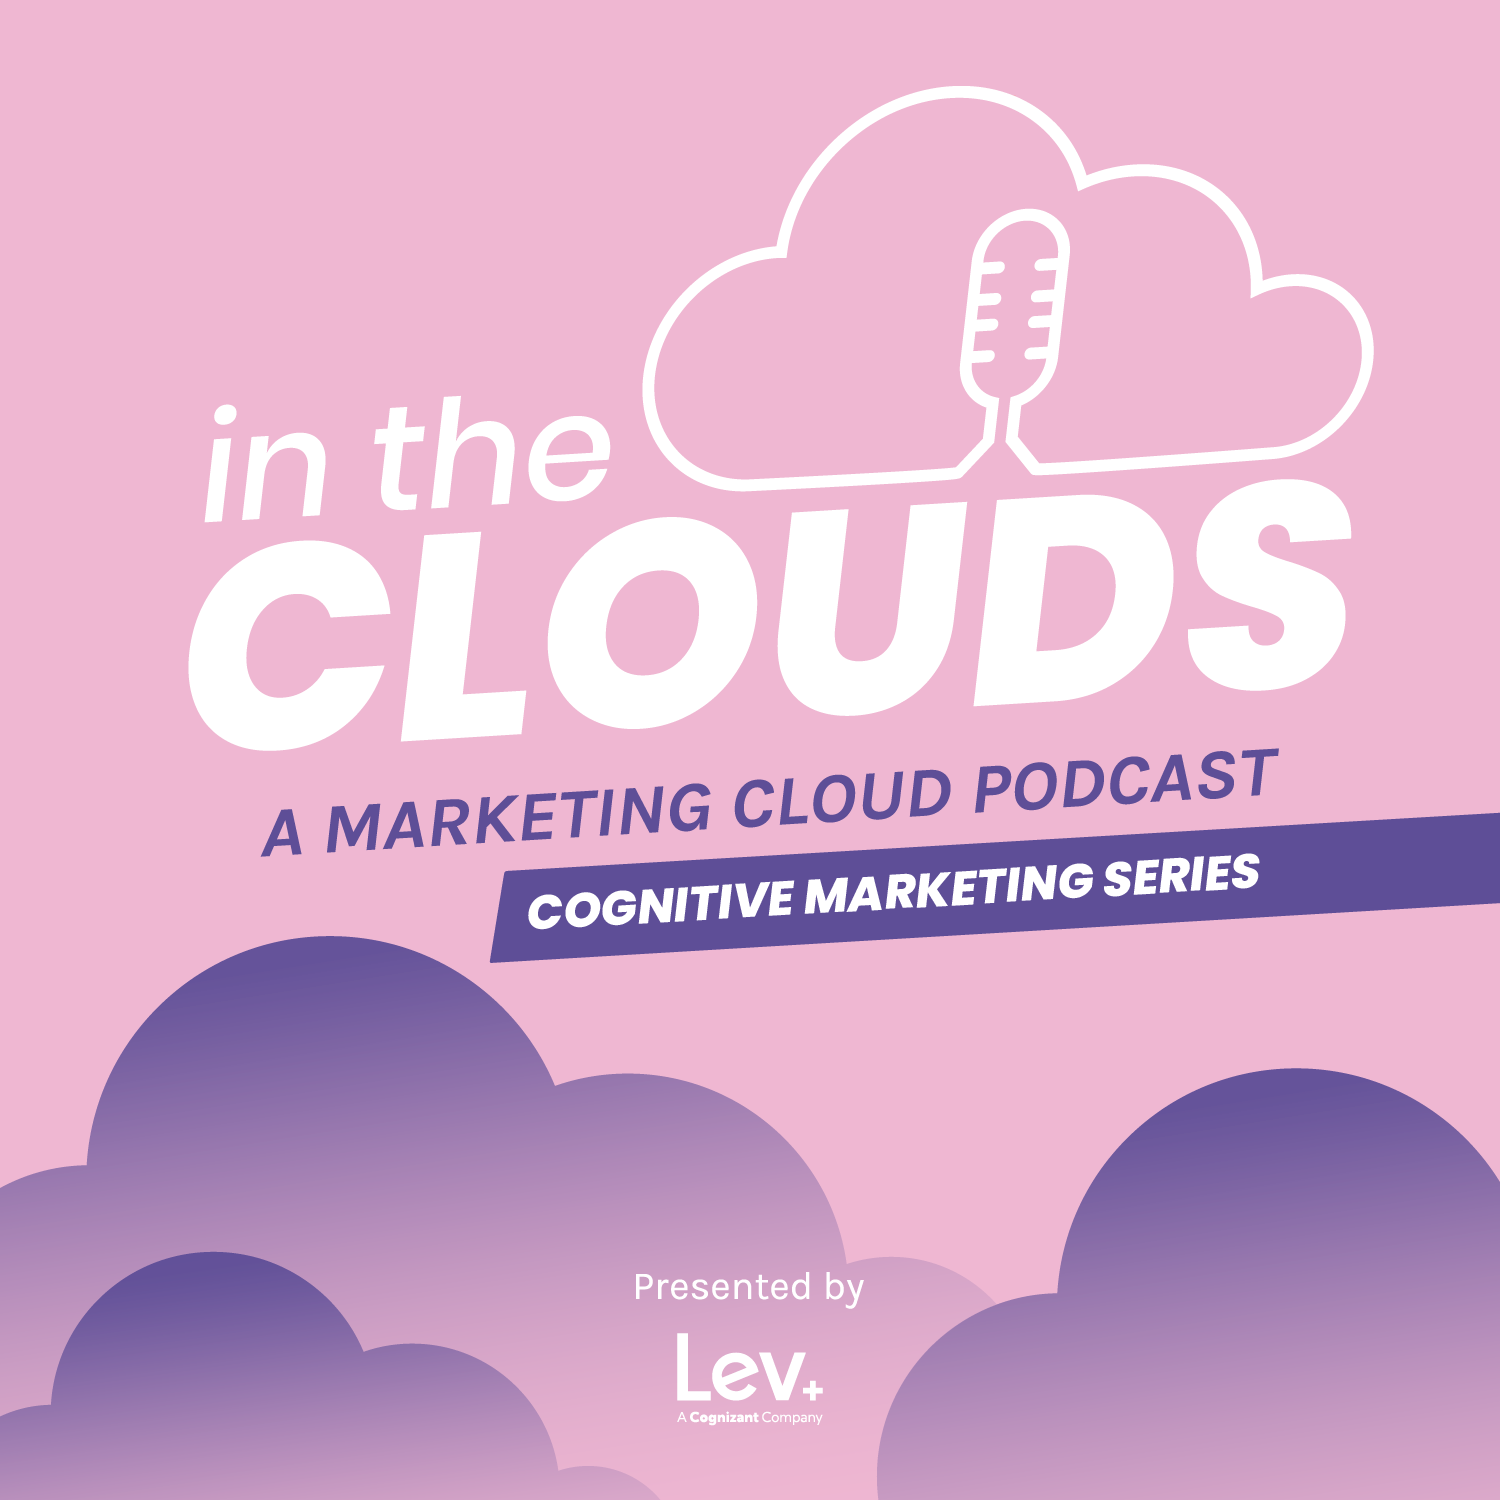 Cognitive Marketing Series: The Law of Least Effort